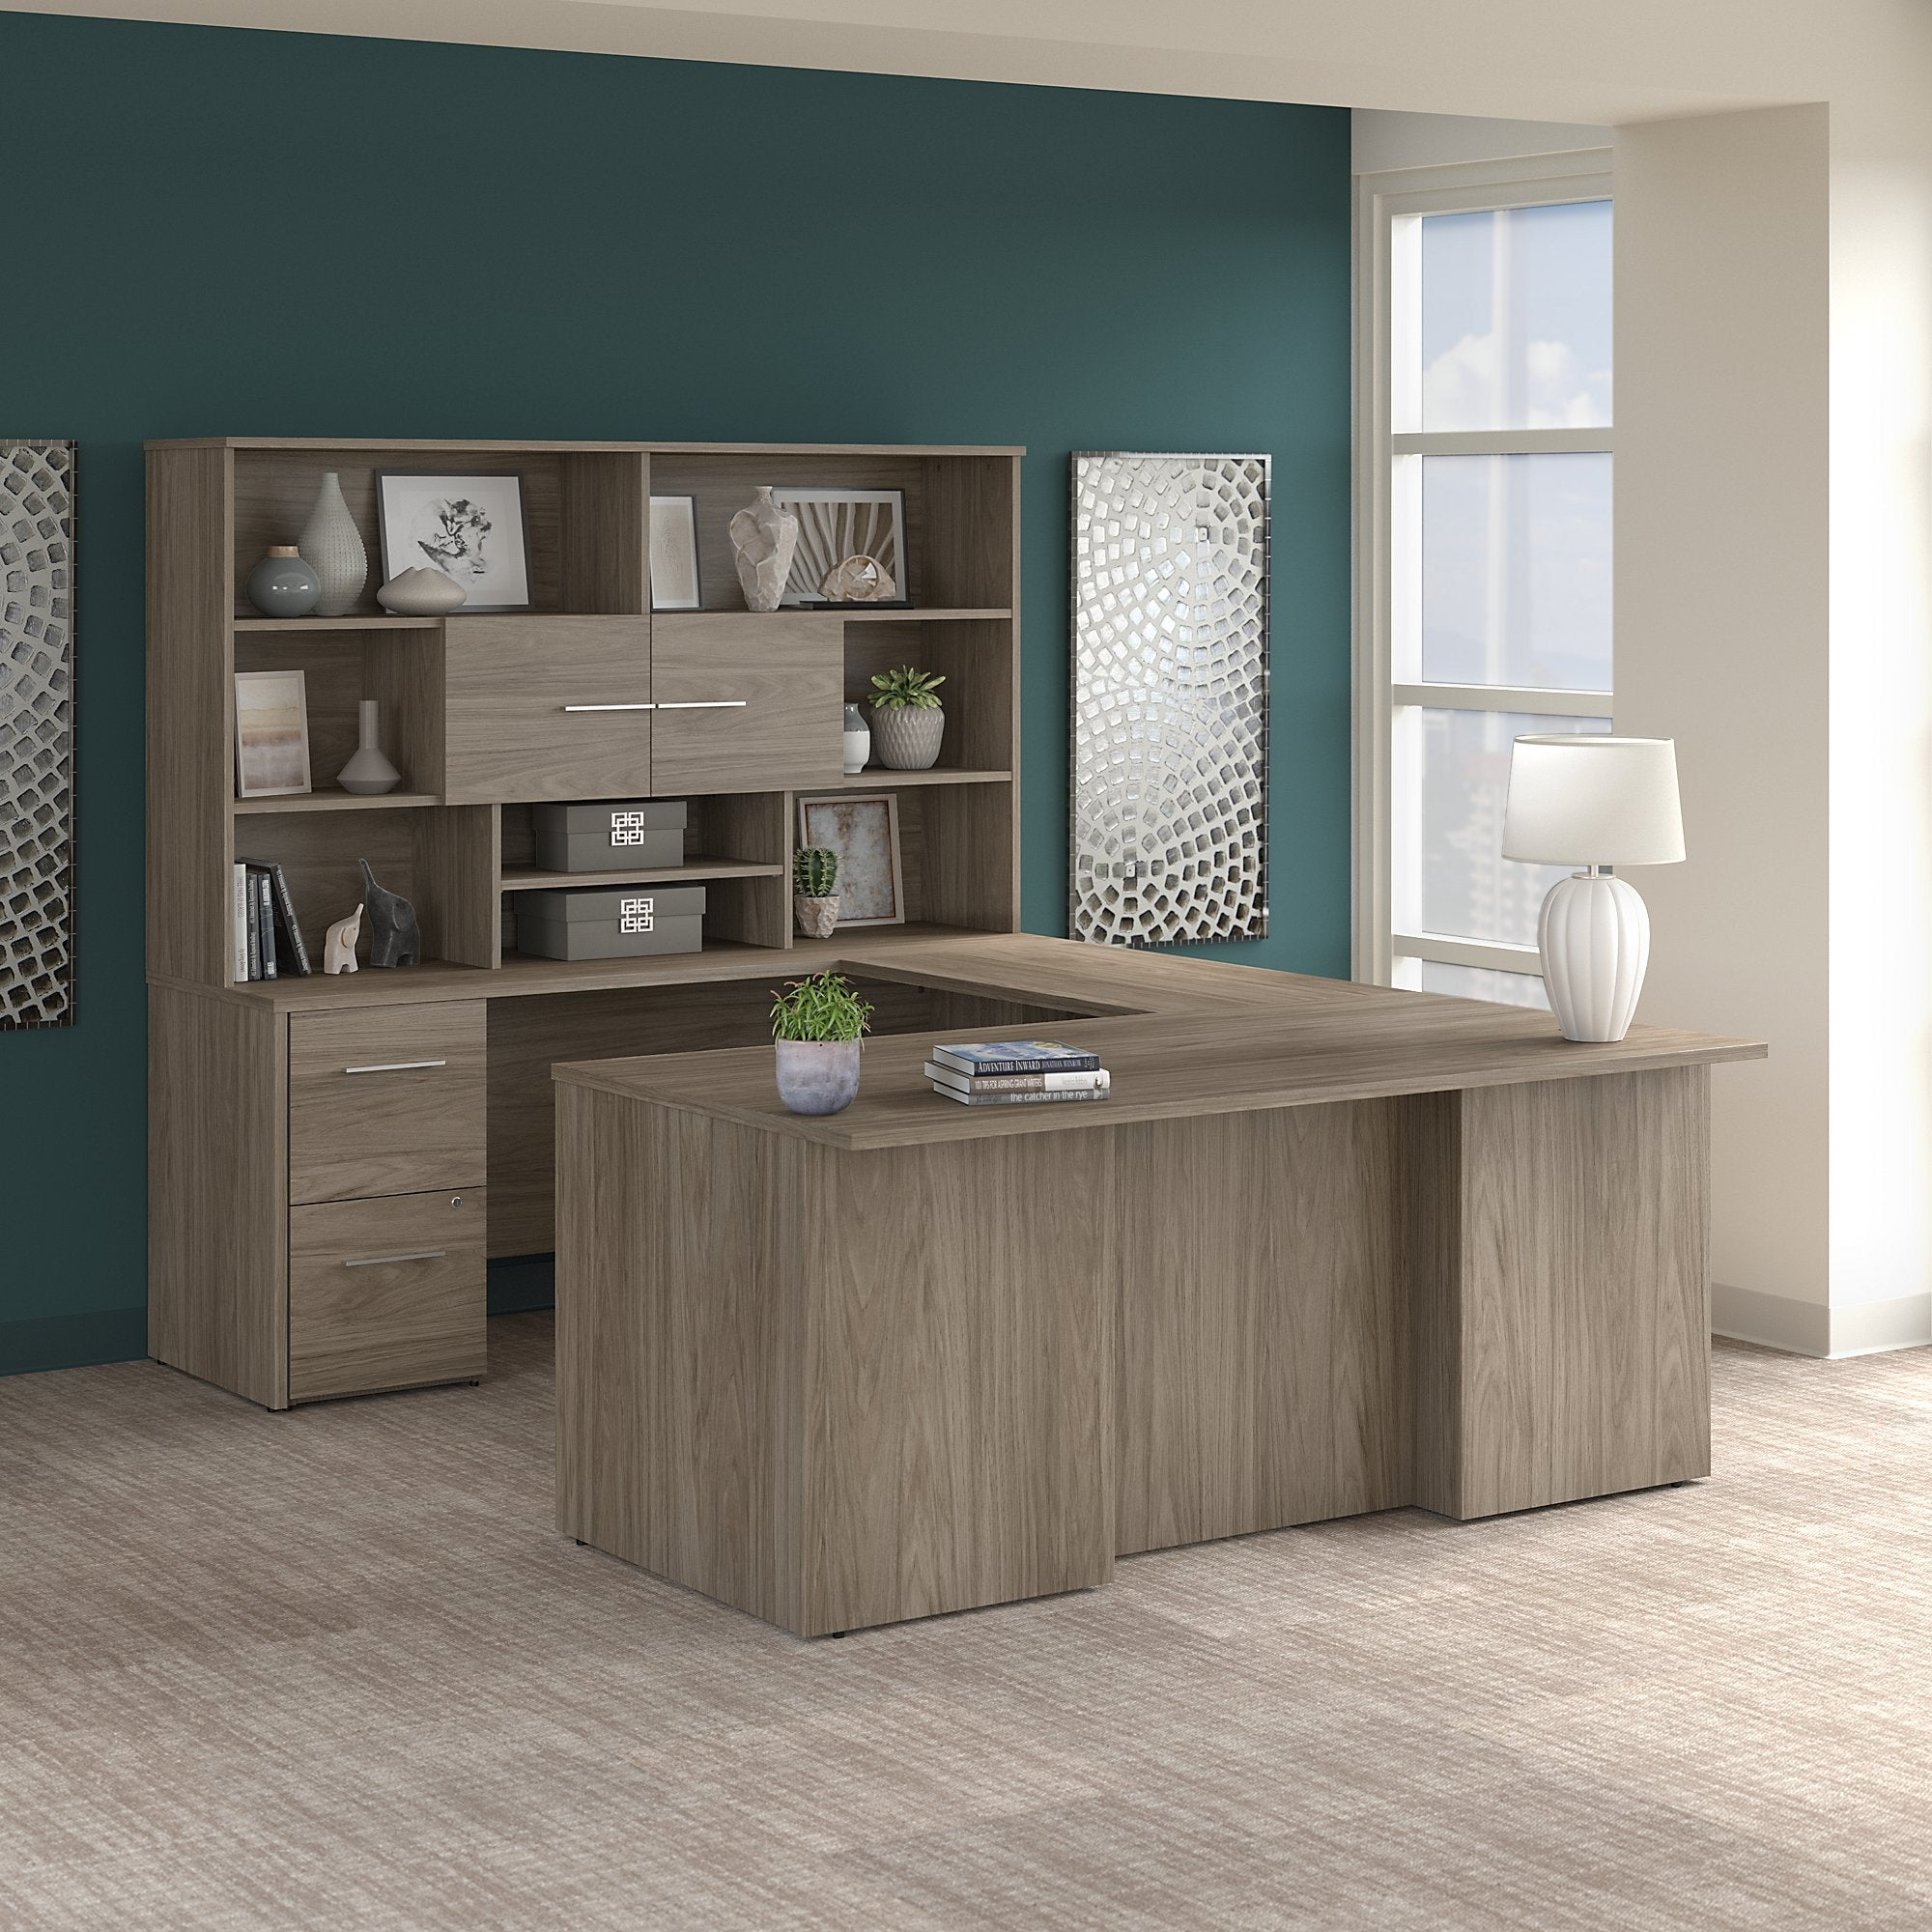 Image of: Shop Black Friday Deals On Office 500 72w U Shaped Desk With Hutch By Bush Business Furniture Overstock 30843676